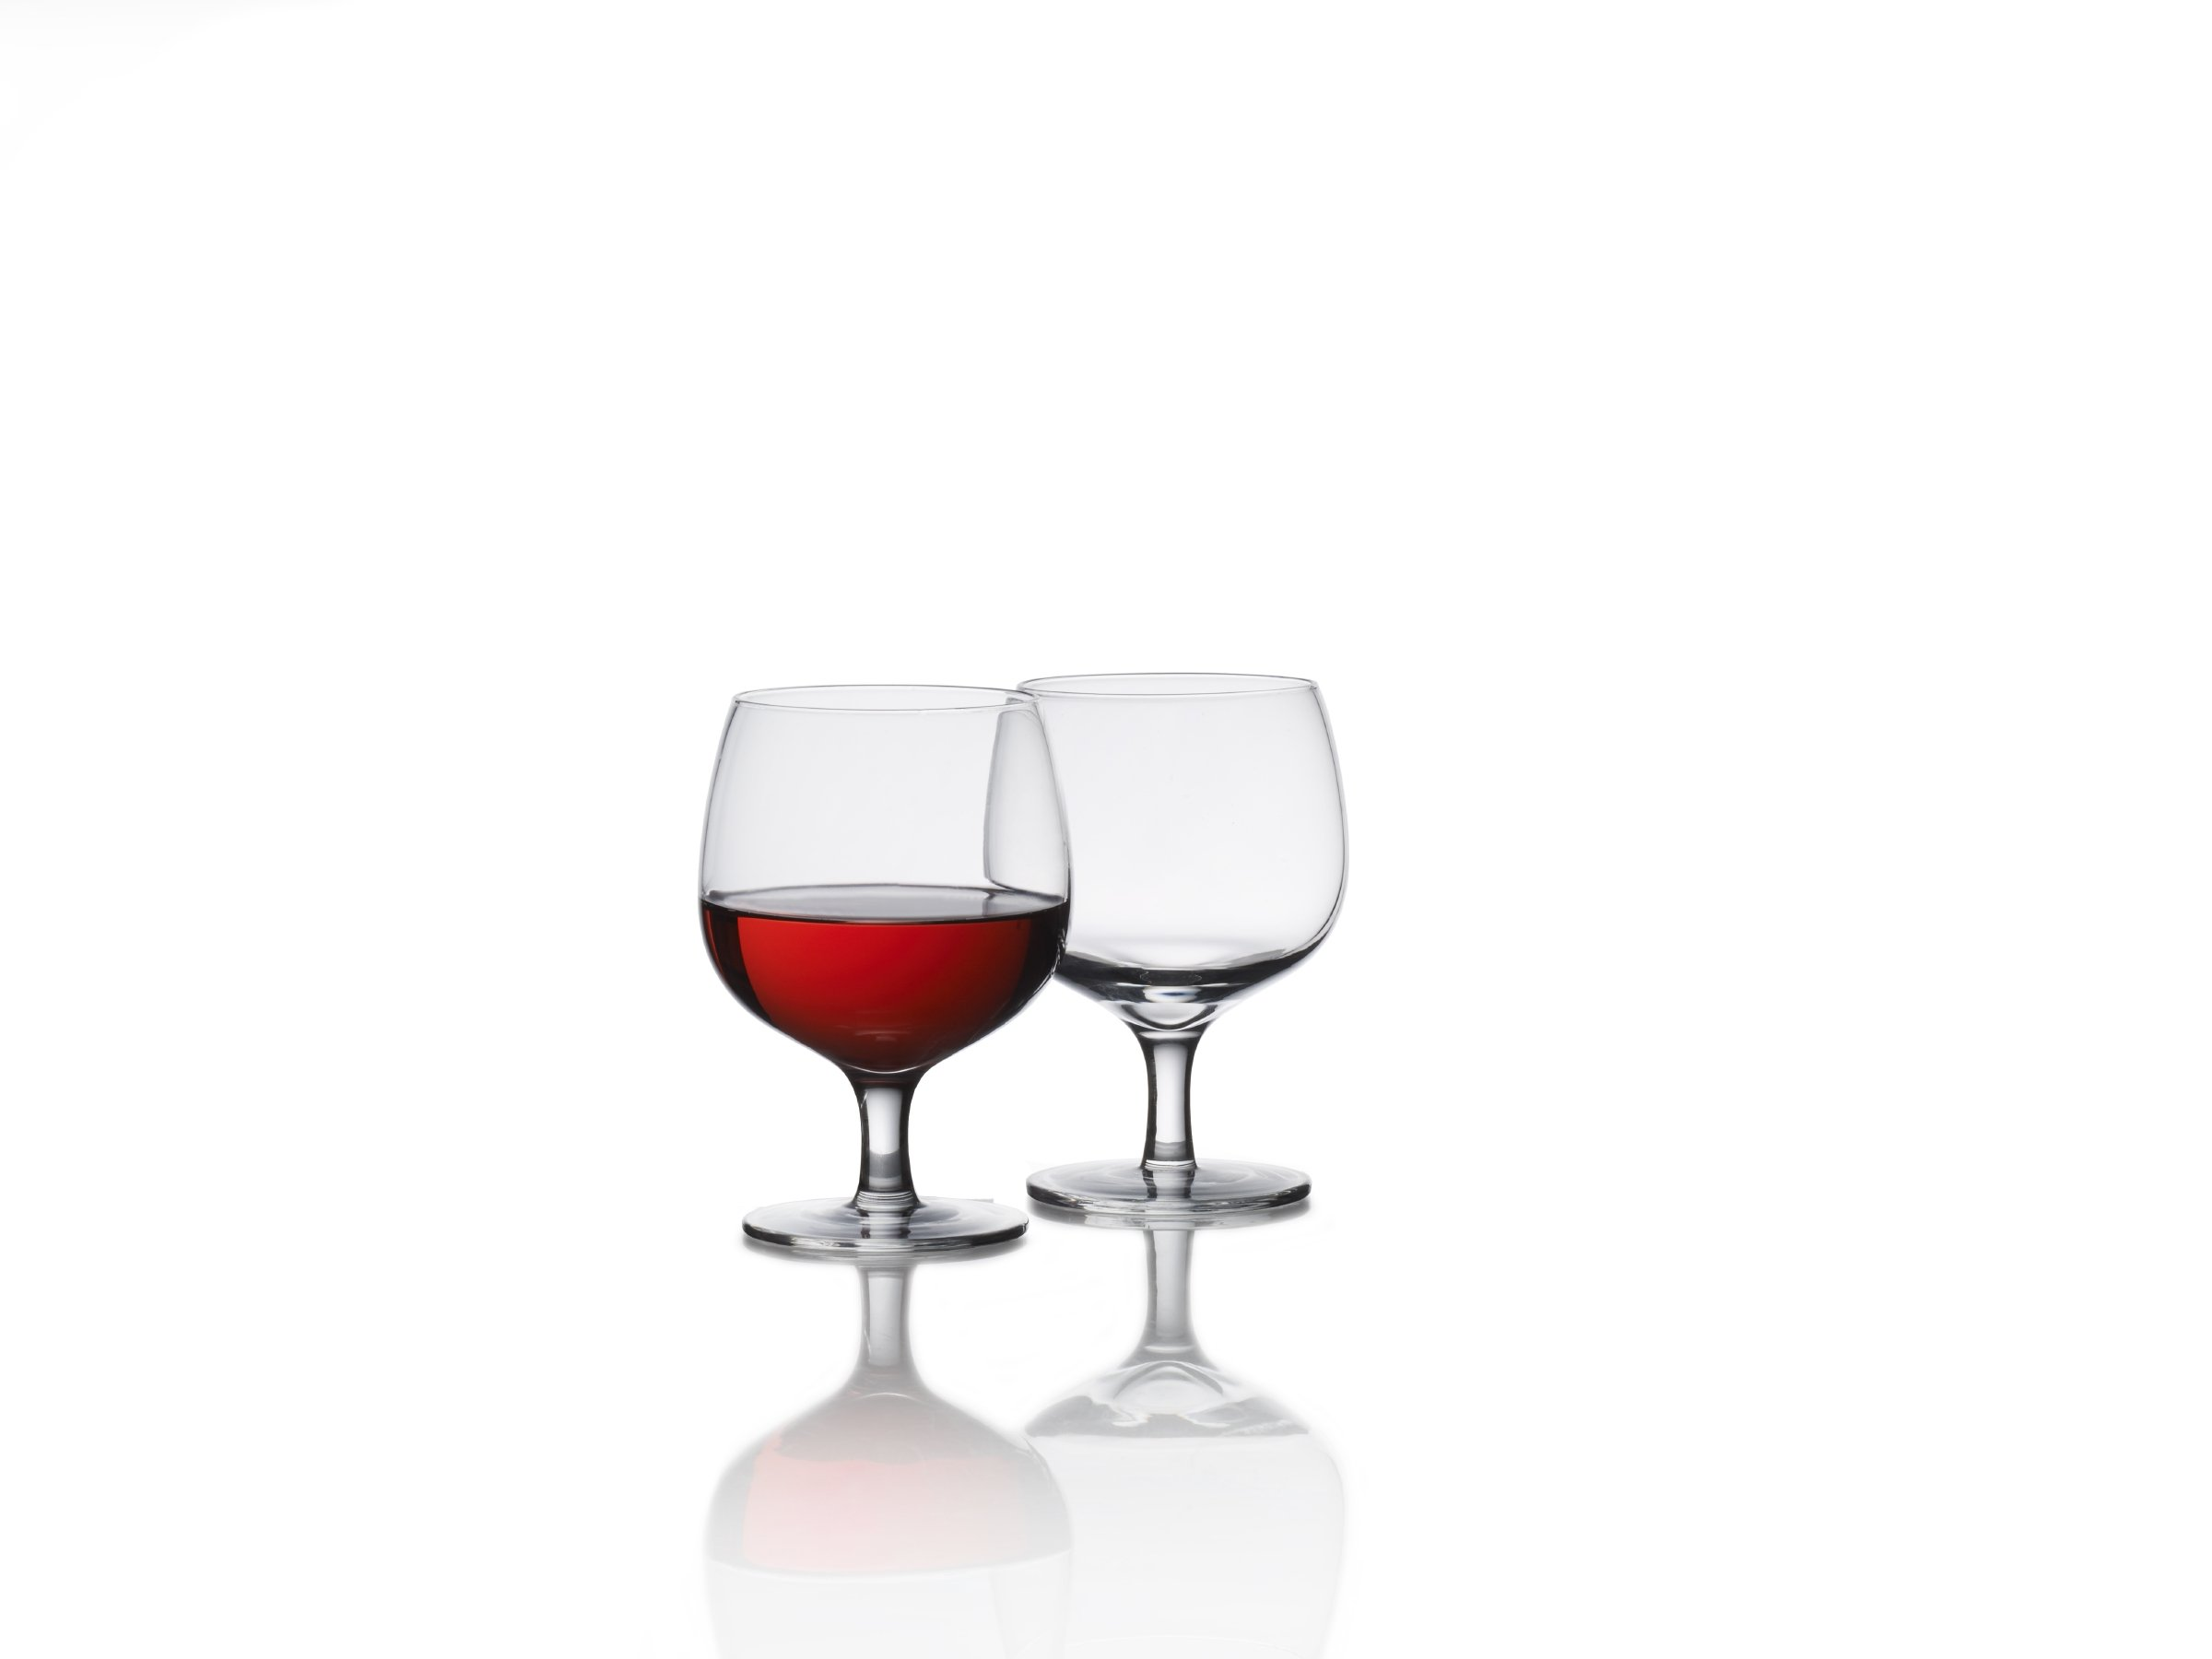 Mikasa Drink4 Stacking Wine Glass, 12.5-Ounce, Set of 4 by Mikasa (Image #2)